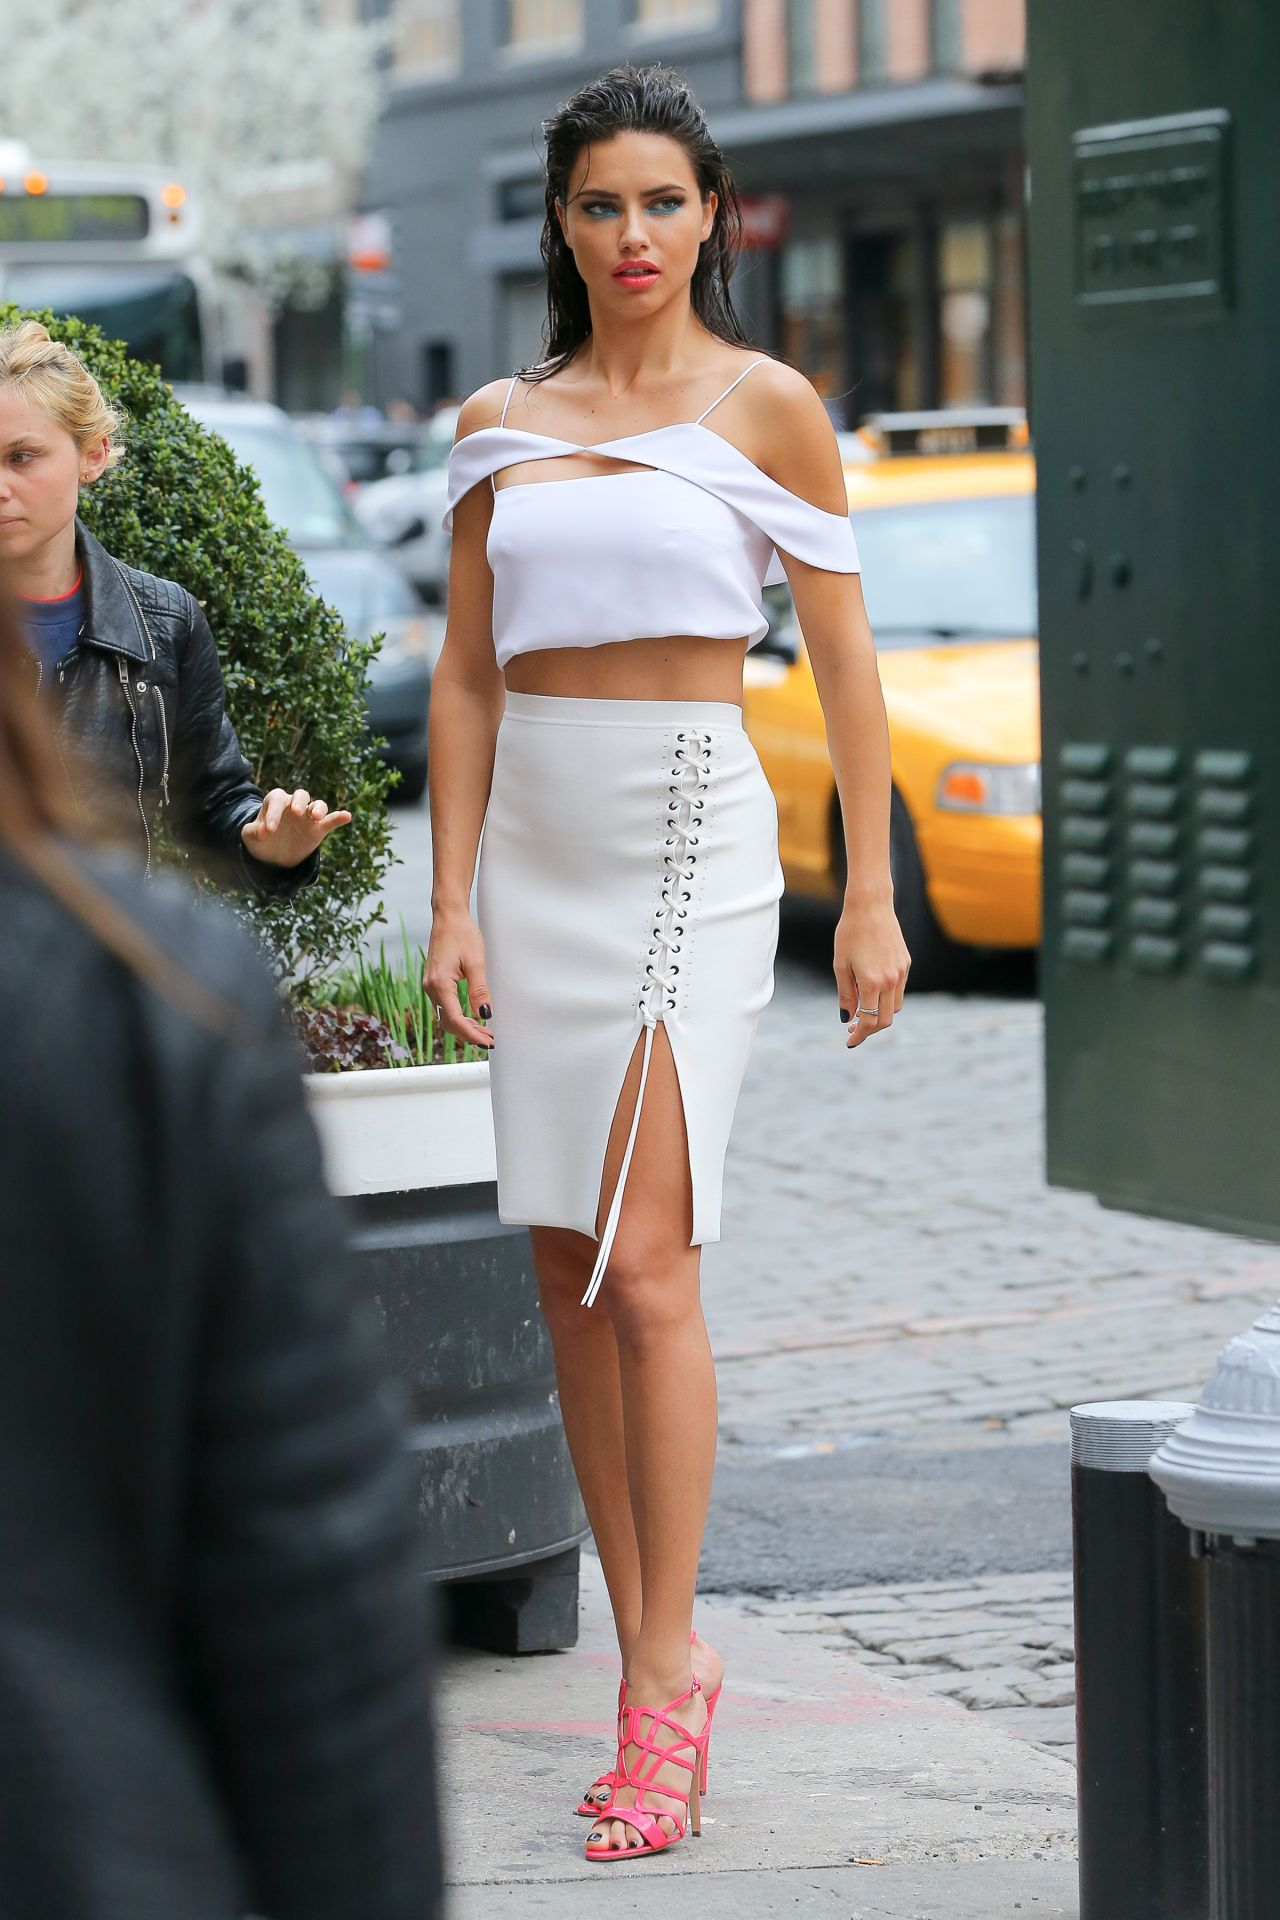 Adriana Lima Photoshoot Set In New York City 4 1 2016